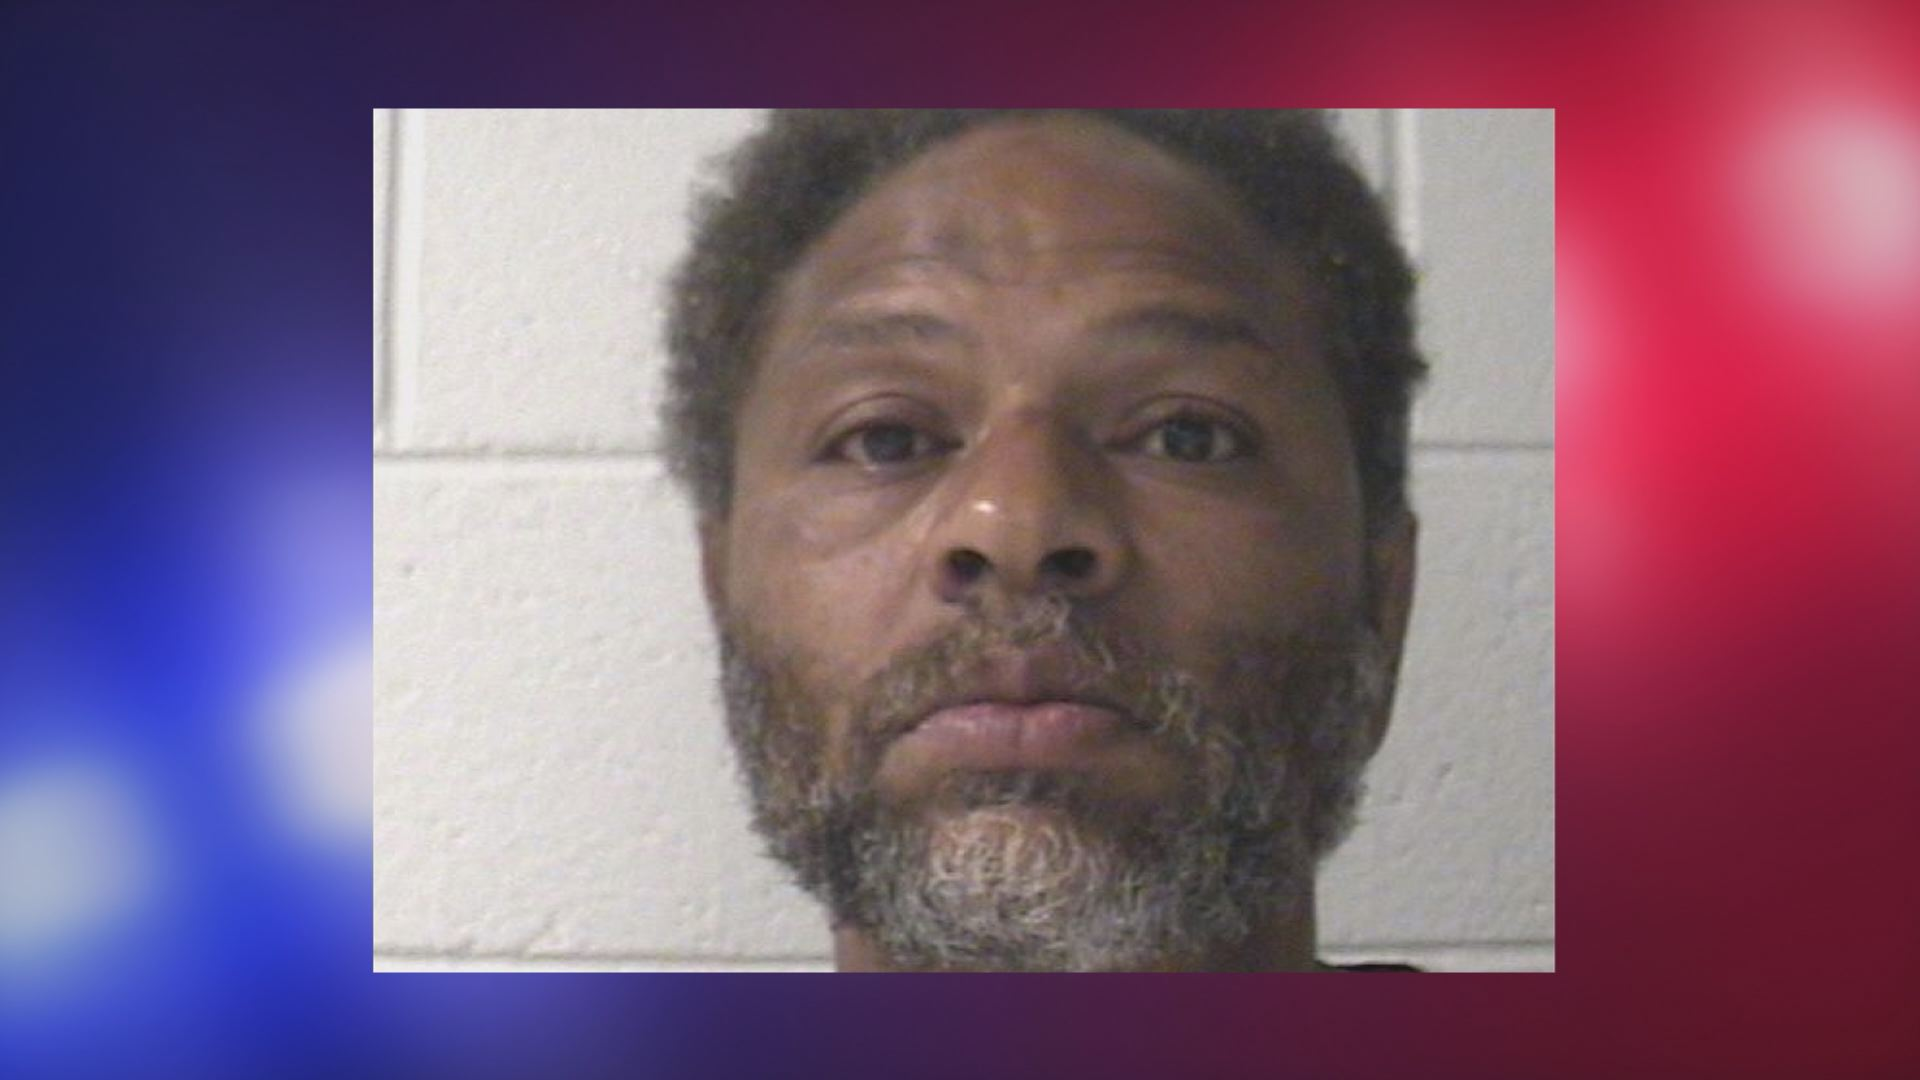 Jonesborough man arrested after allegedly hitting man with